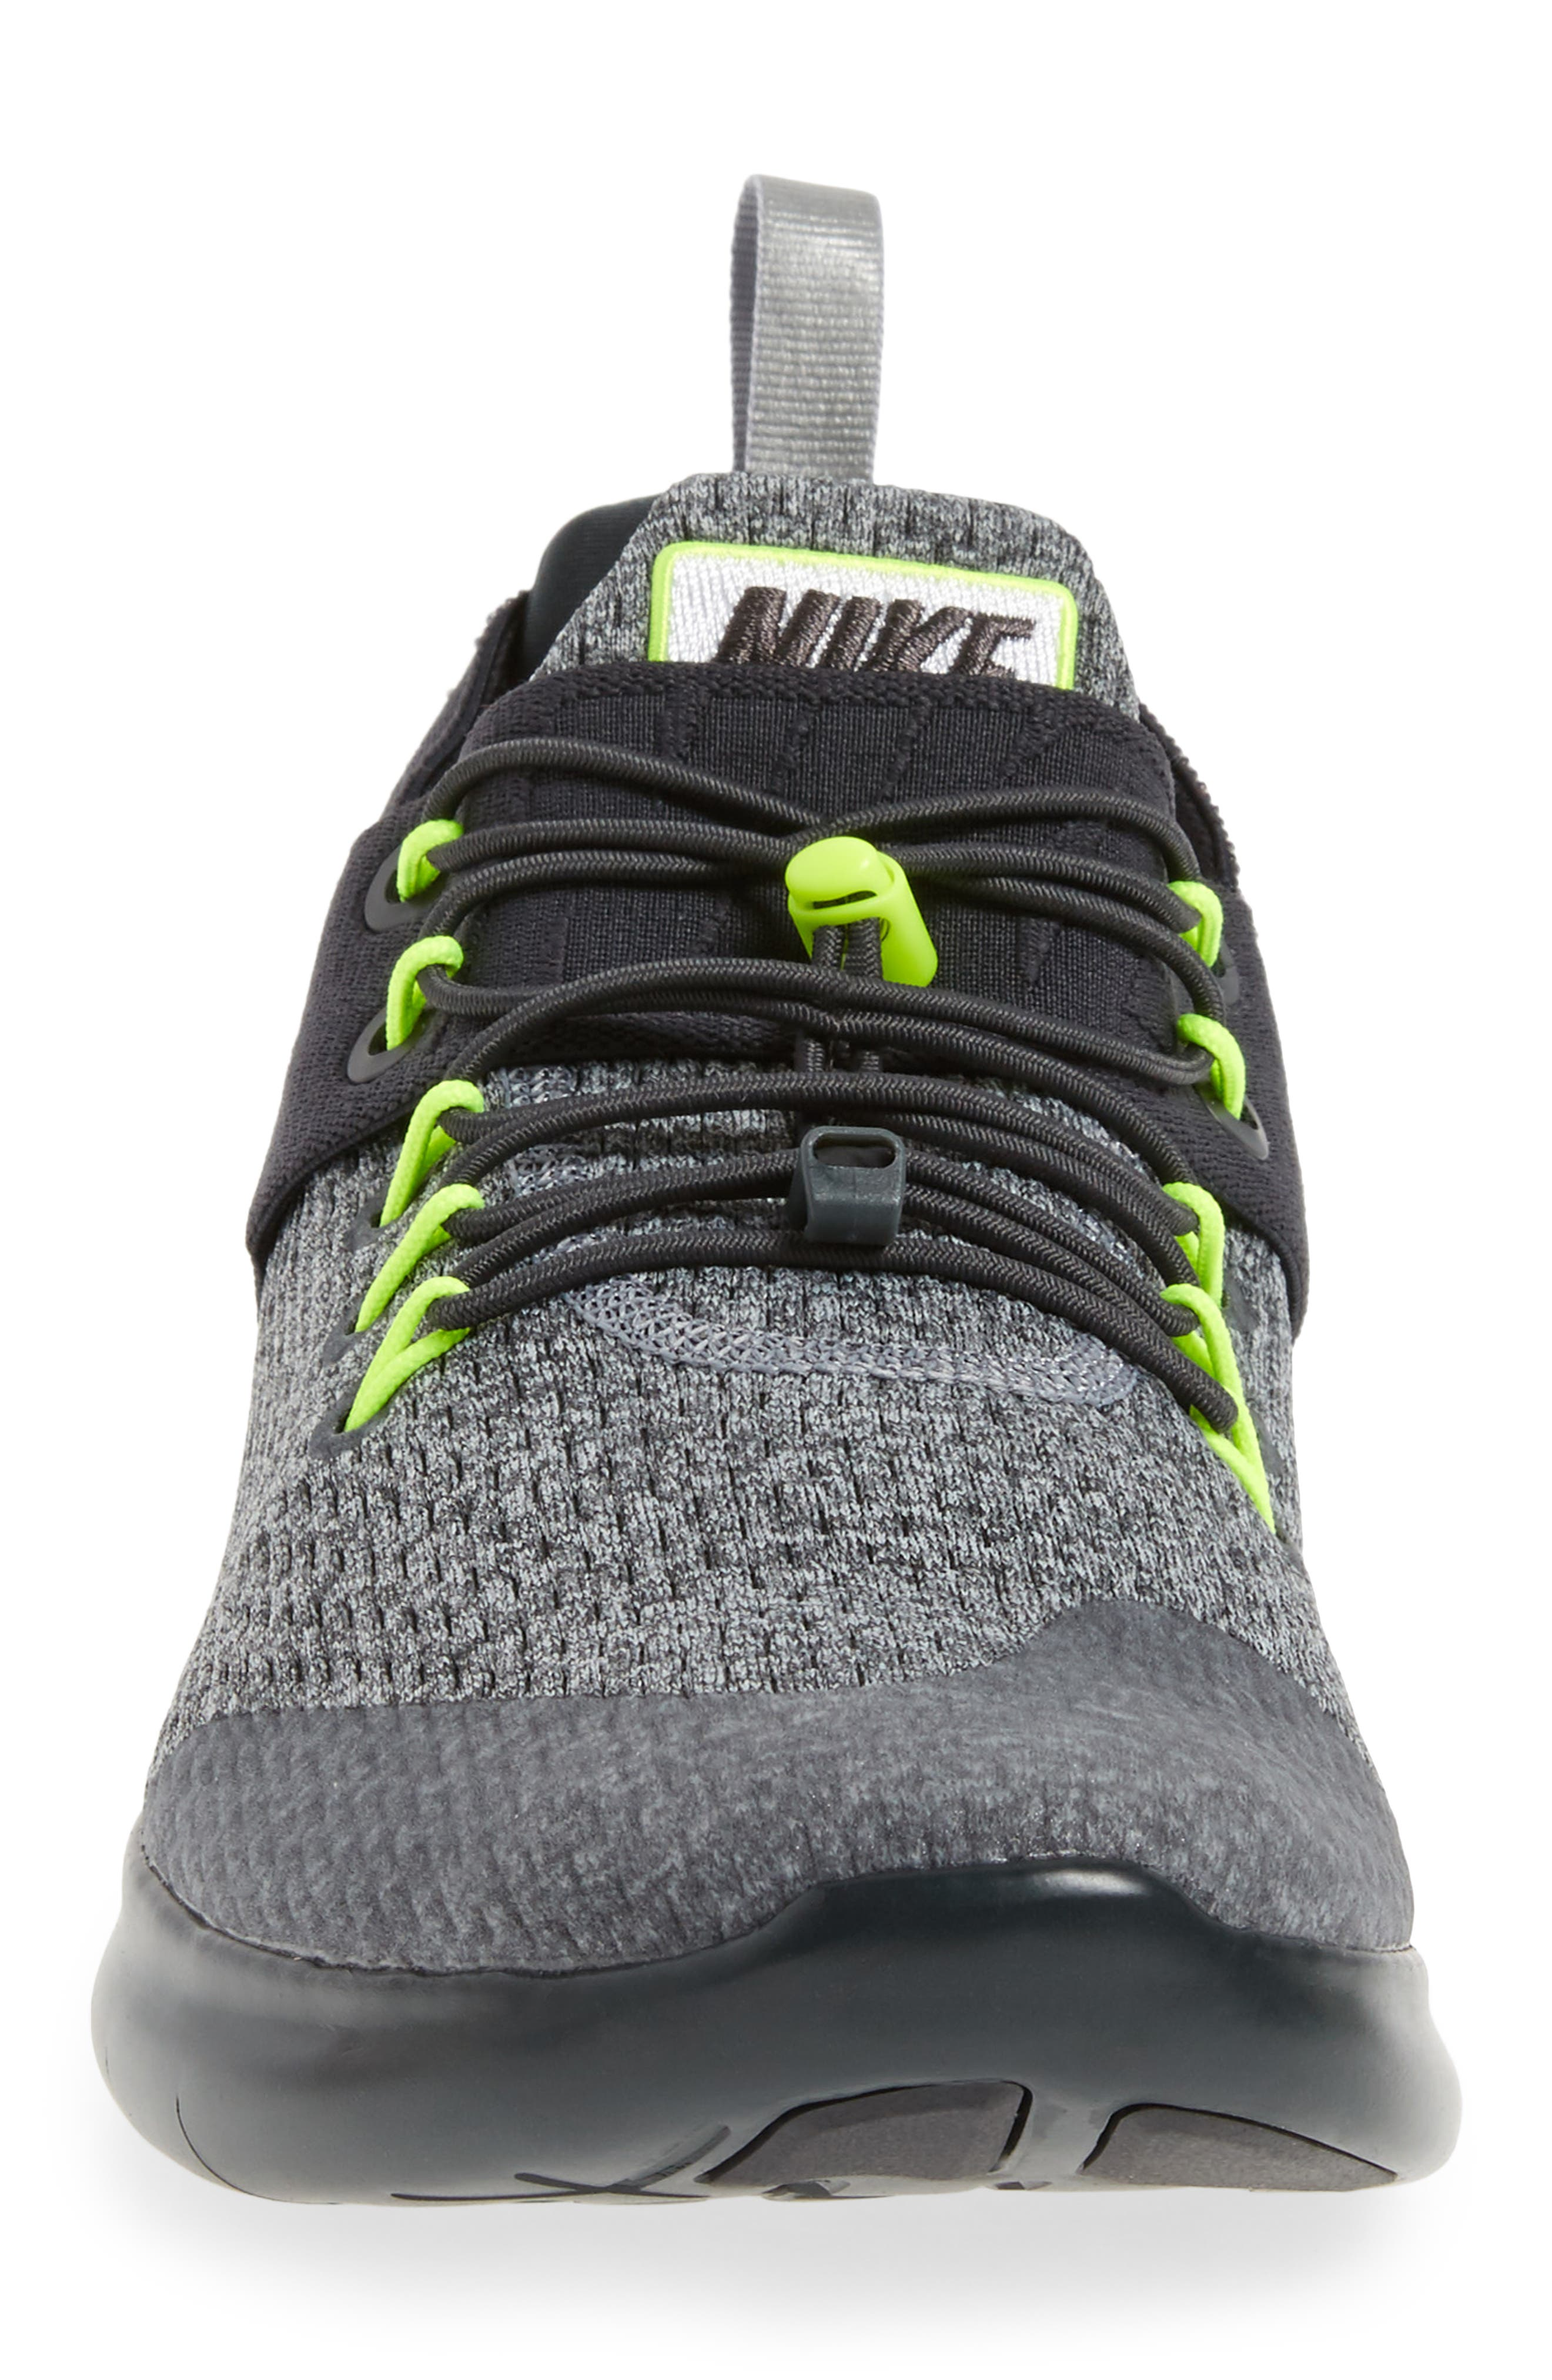 Free RN Commuter 2017 Running Shoe,                             Alternate thumbnail 4, color,                             Anthracite/Barely Volt/Grey